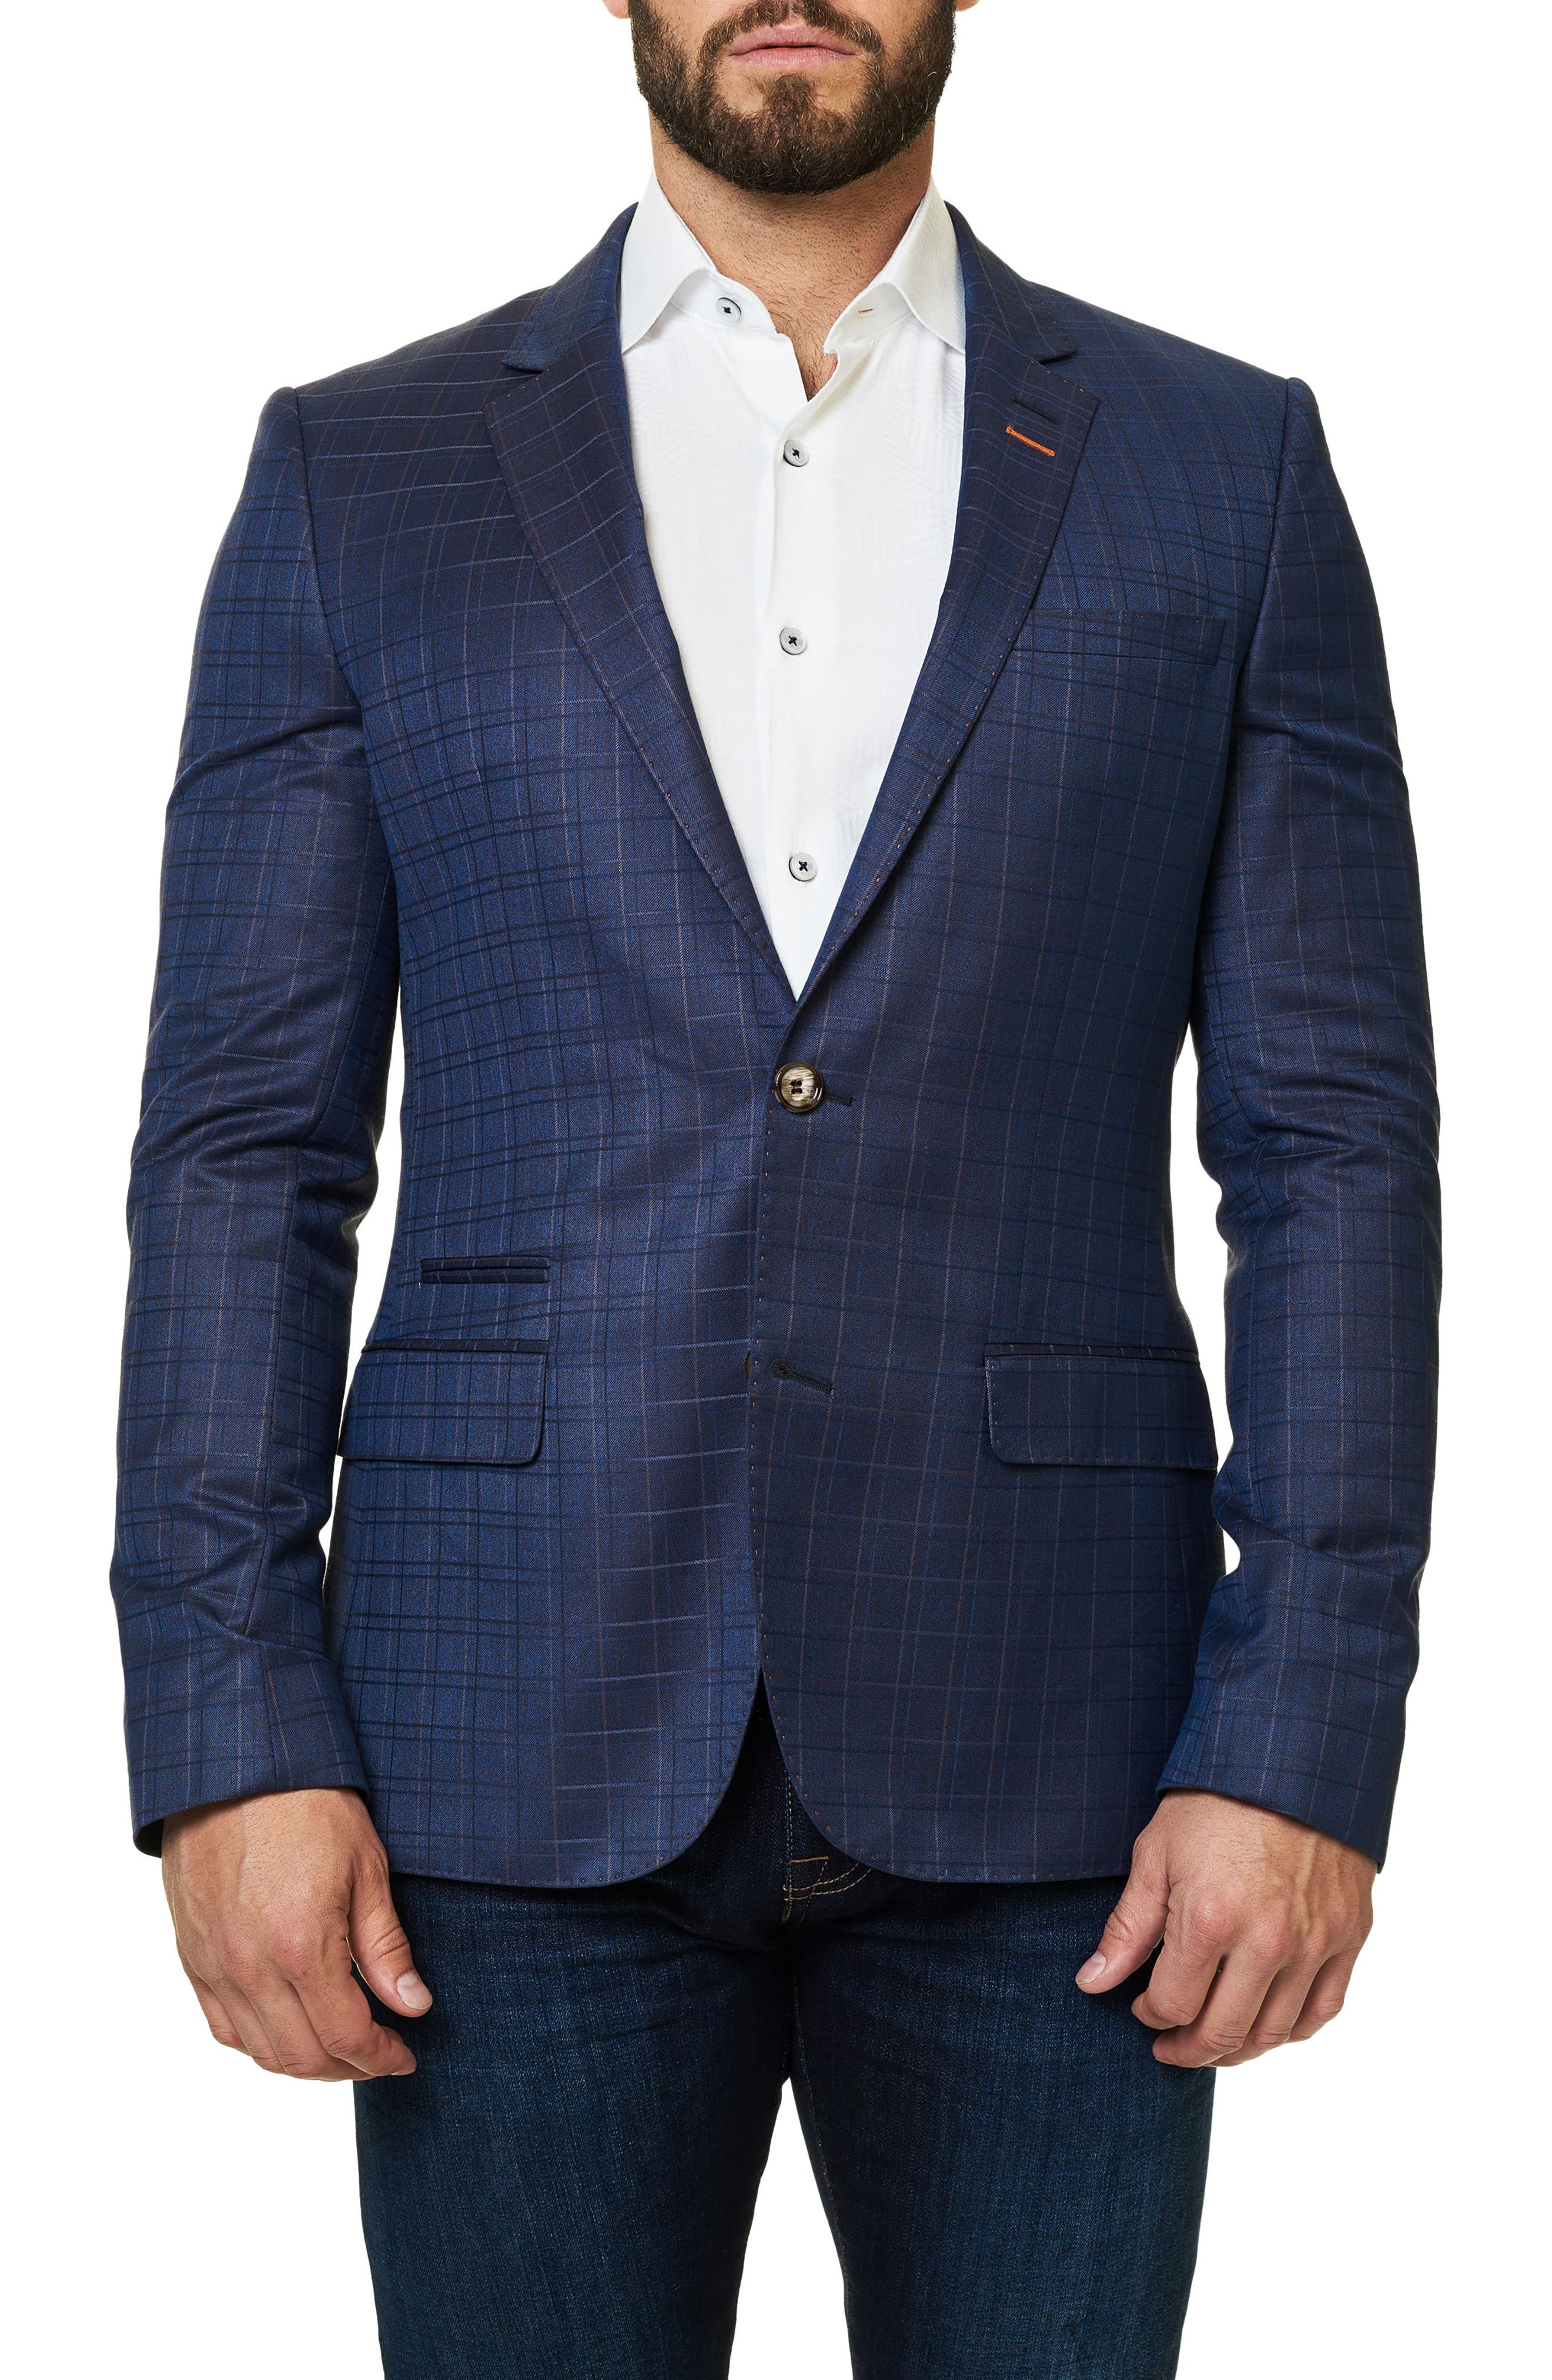 Maceoo Socrate Plaid Sport Coat